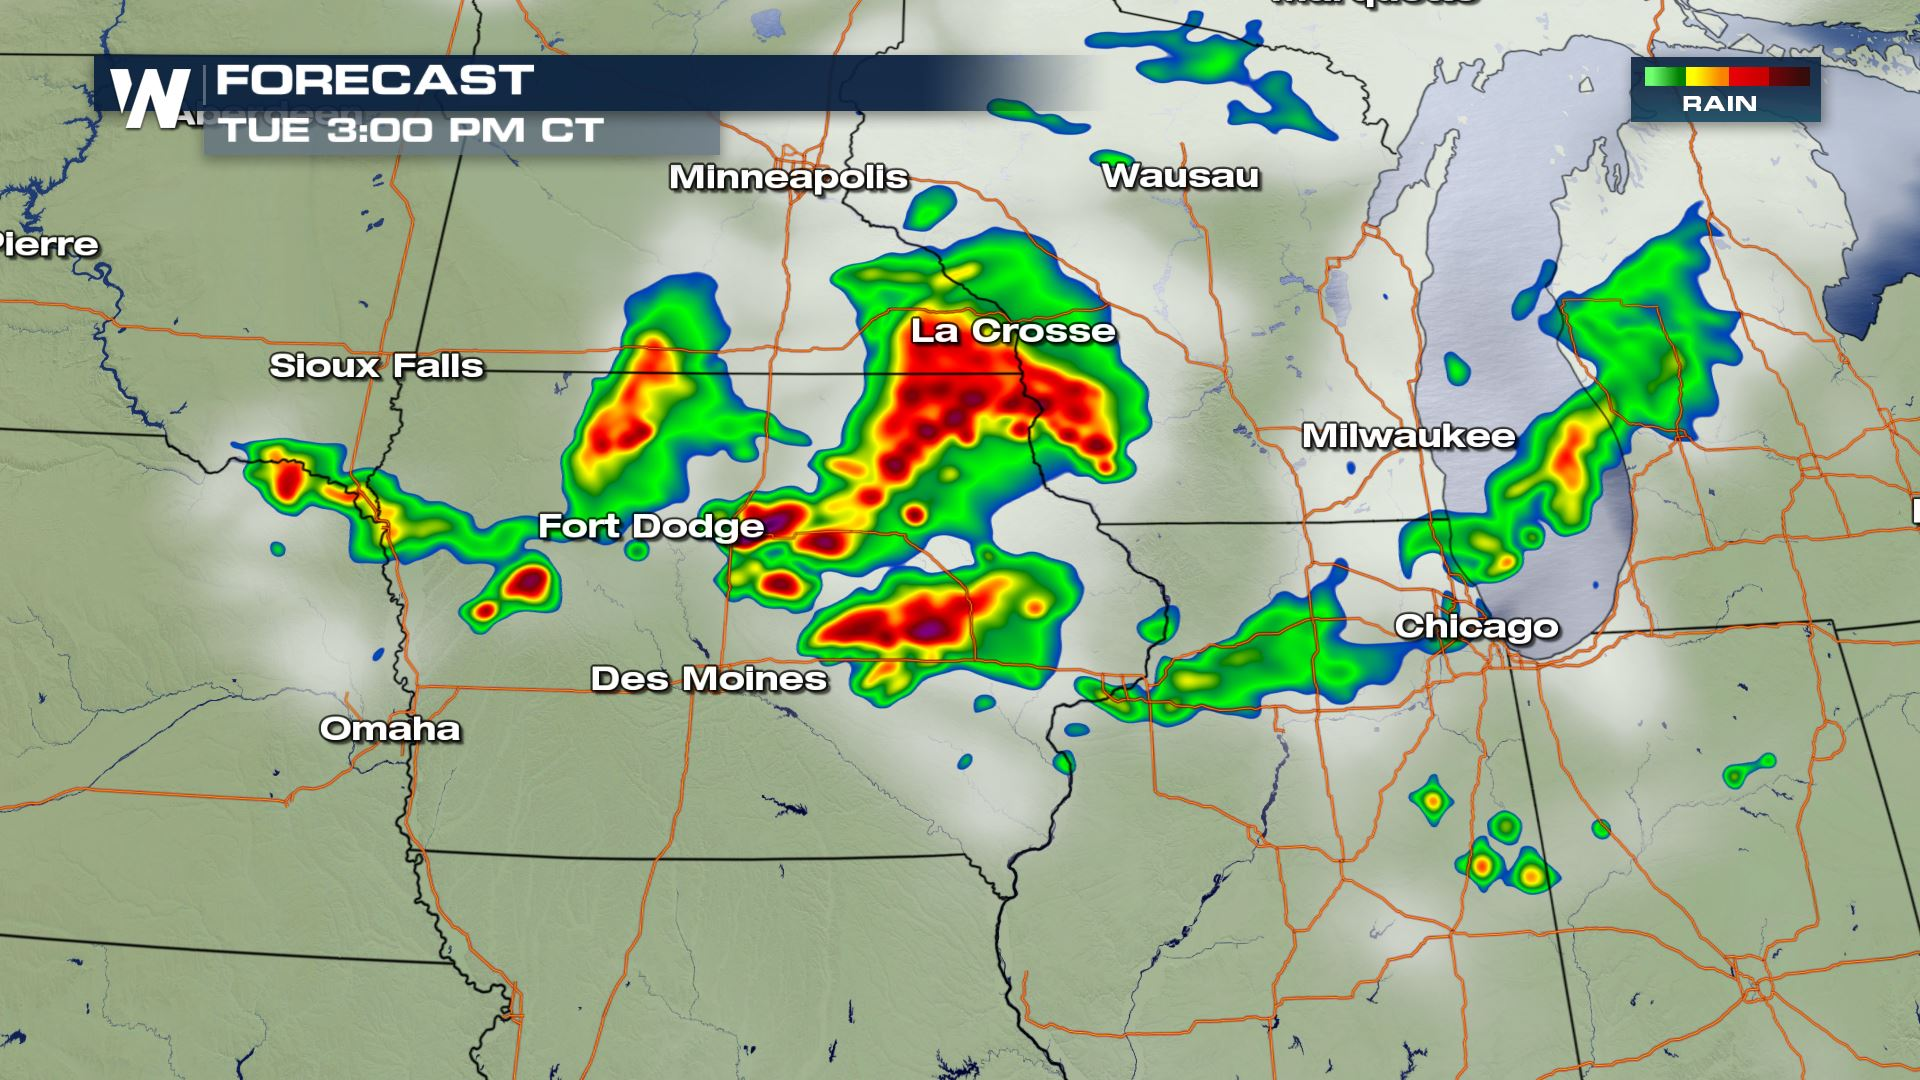 Tuesday S Severe Weather Forecast Weathernation